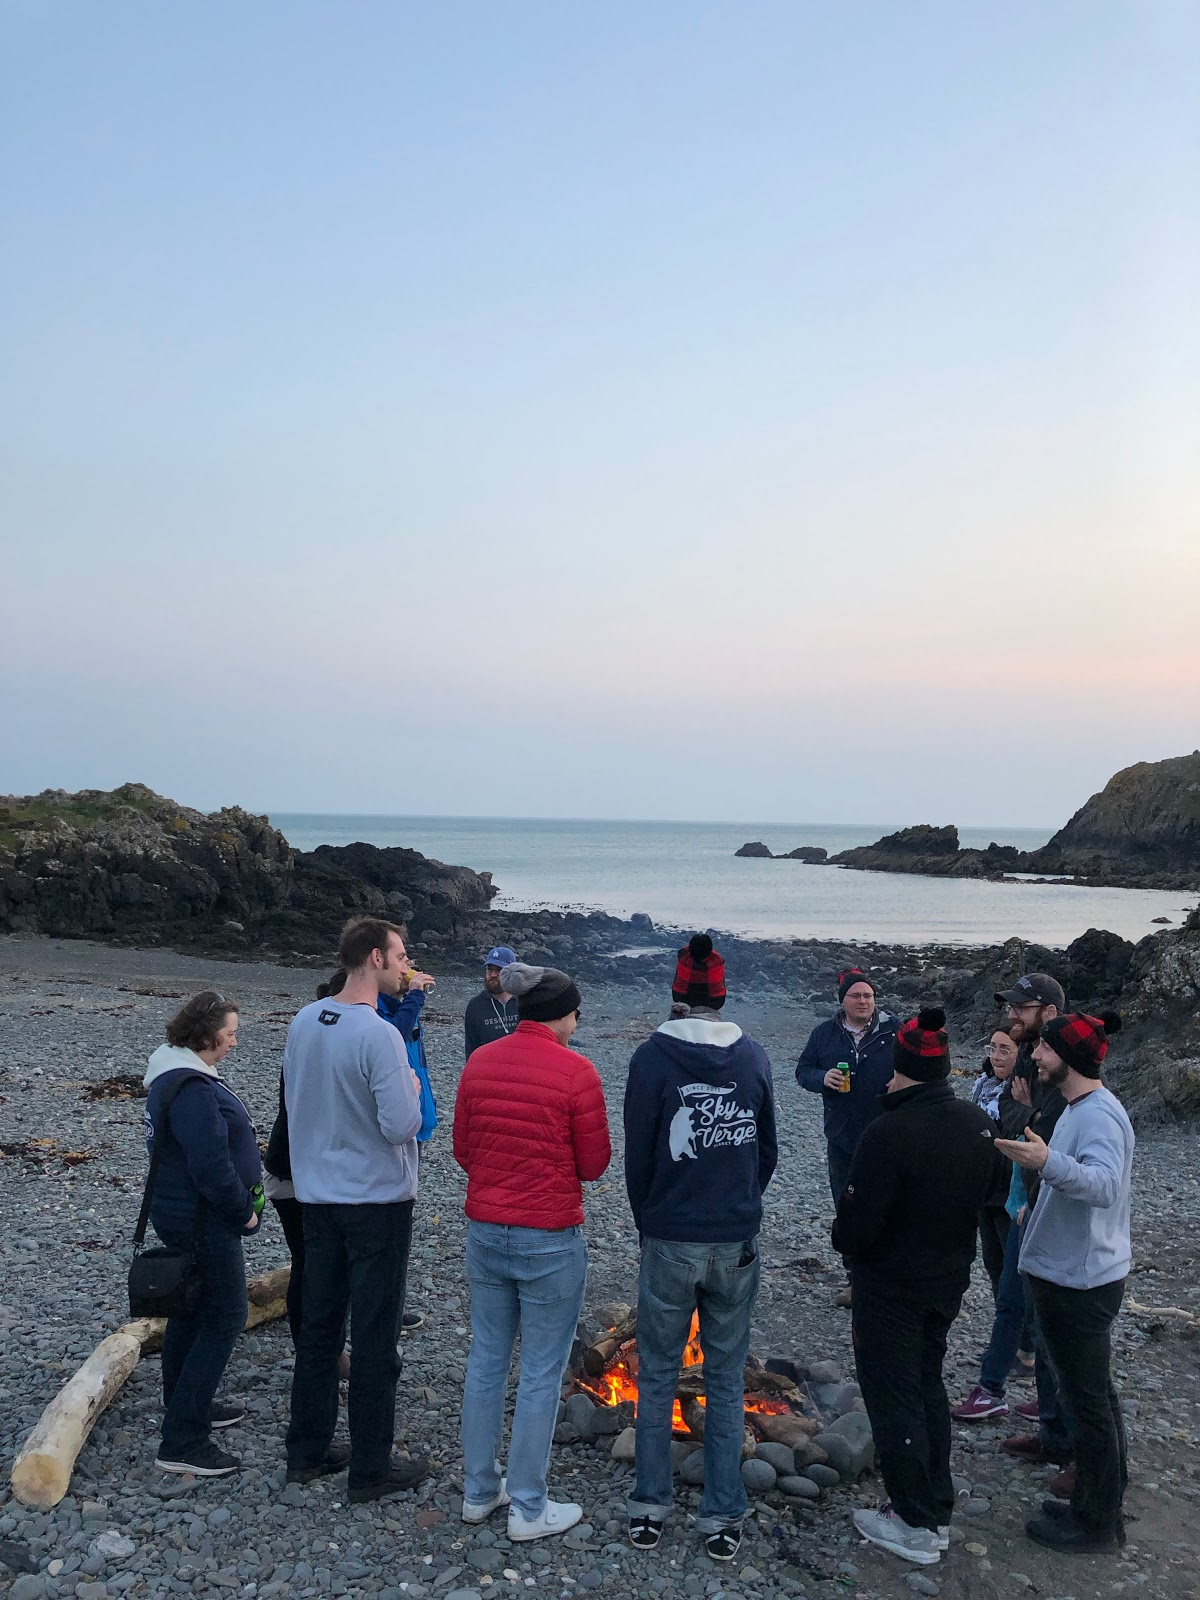 Team SkyVerge beach bonfire in Scotland